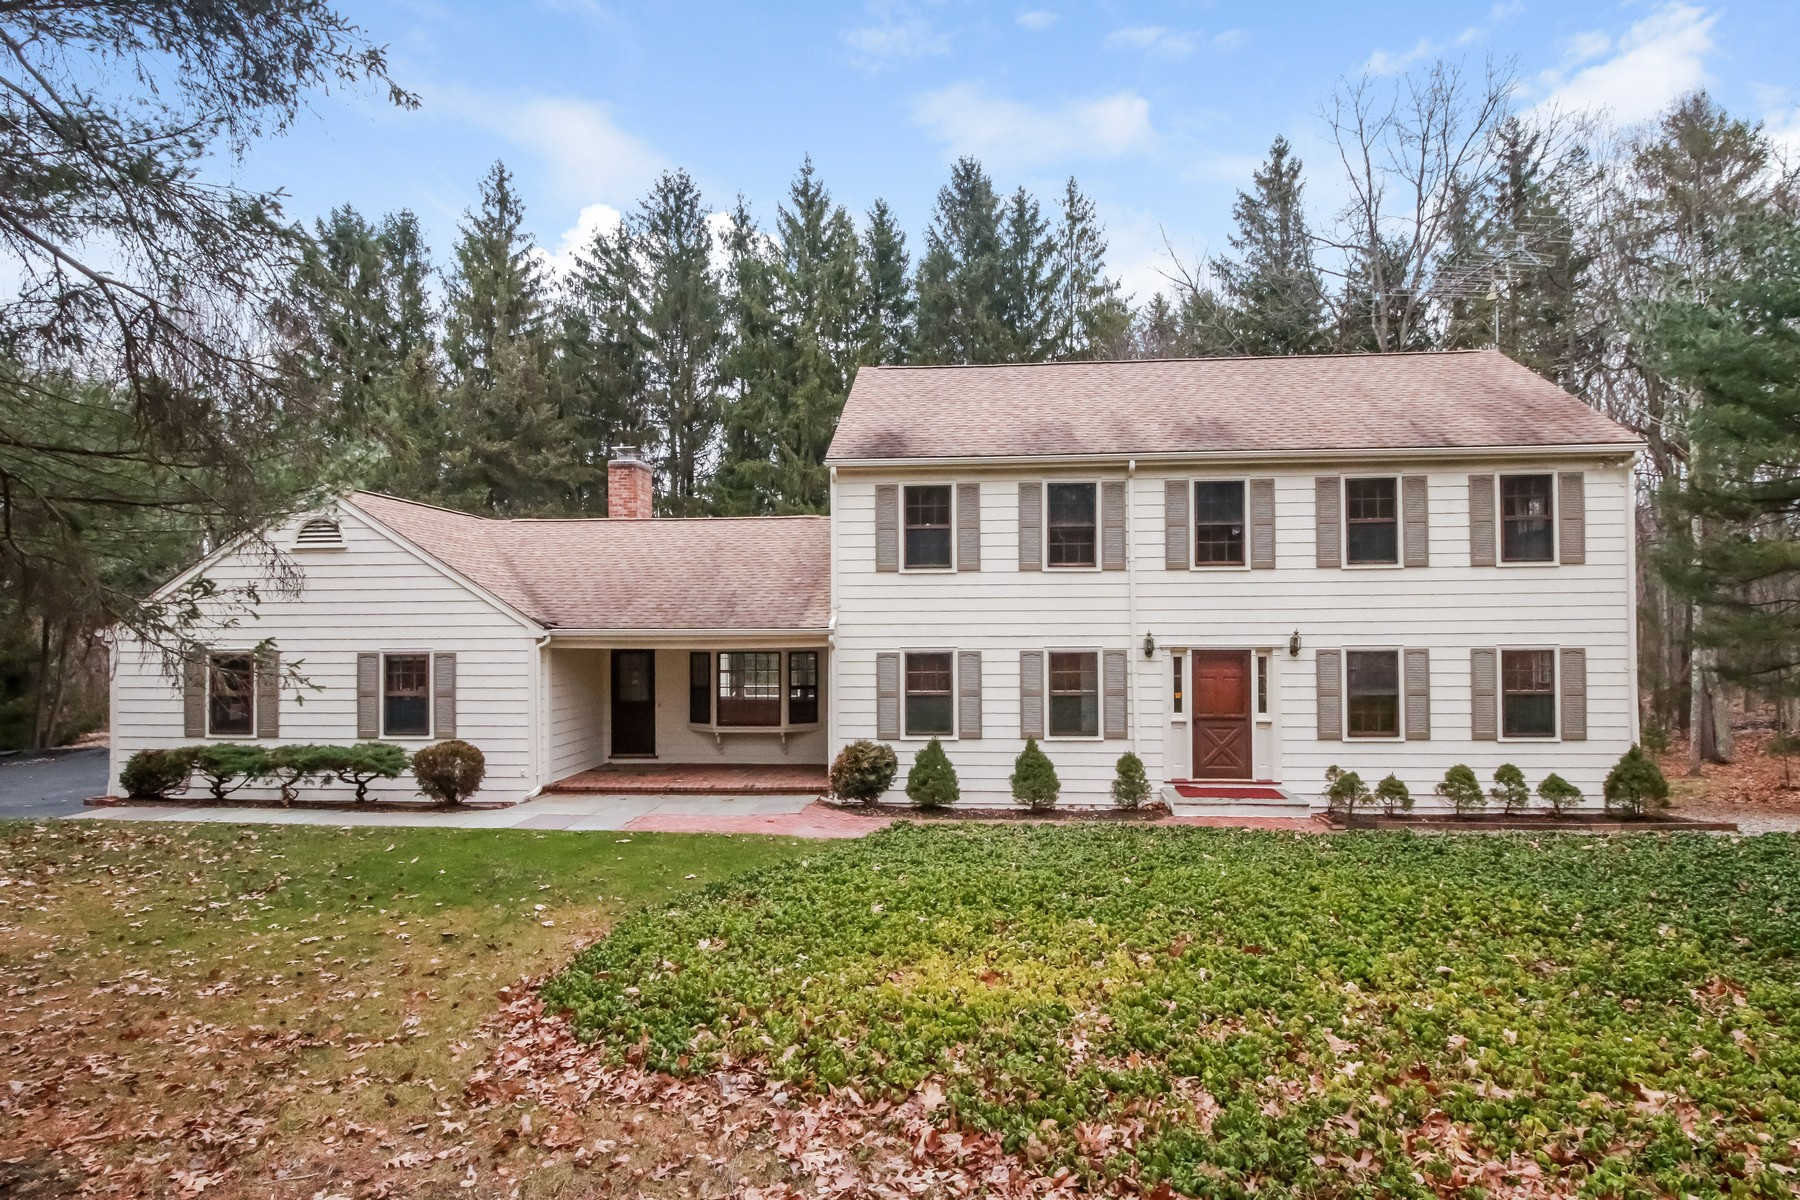 Property For Sale at Spacious Colonial in Convenient Lower Easton Location